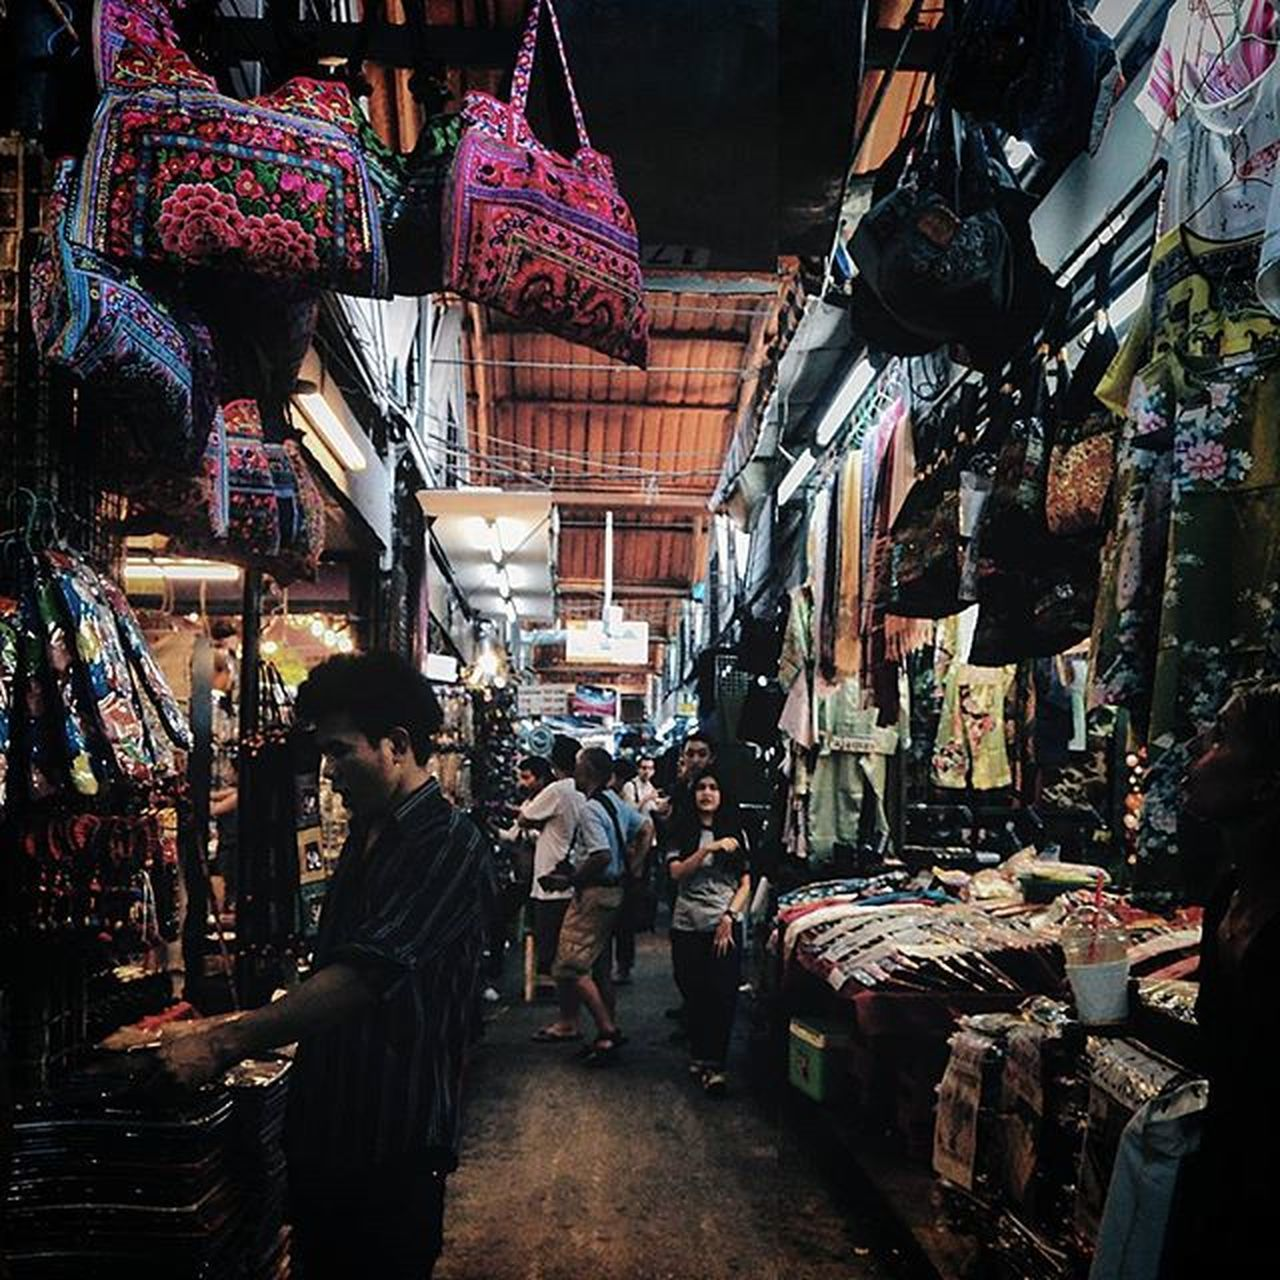 market, store, retail, building exterior, market stall, architecture, real people, street, city, consumerism, choice, men, customer, lifestyles, built structure, night, outdoors, women, adult, people, adults only